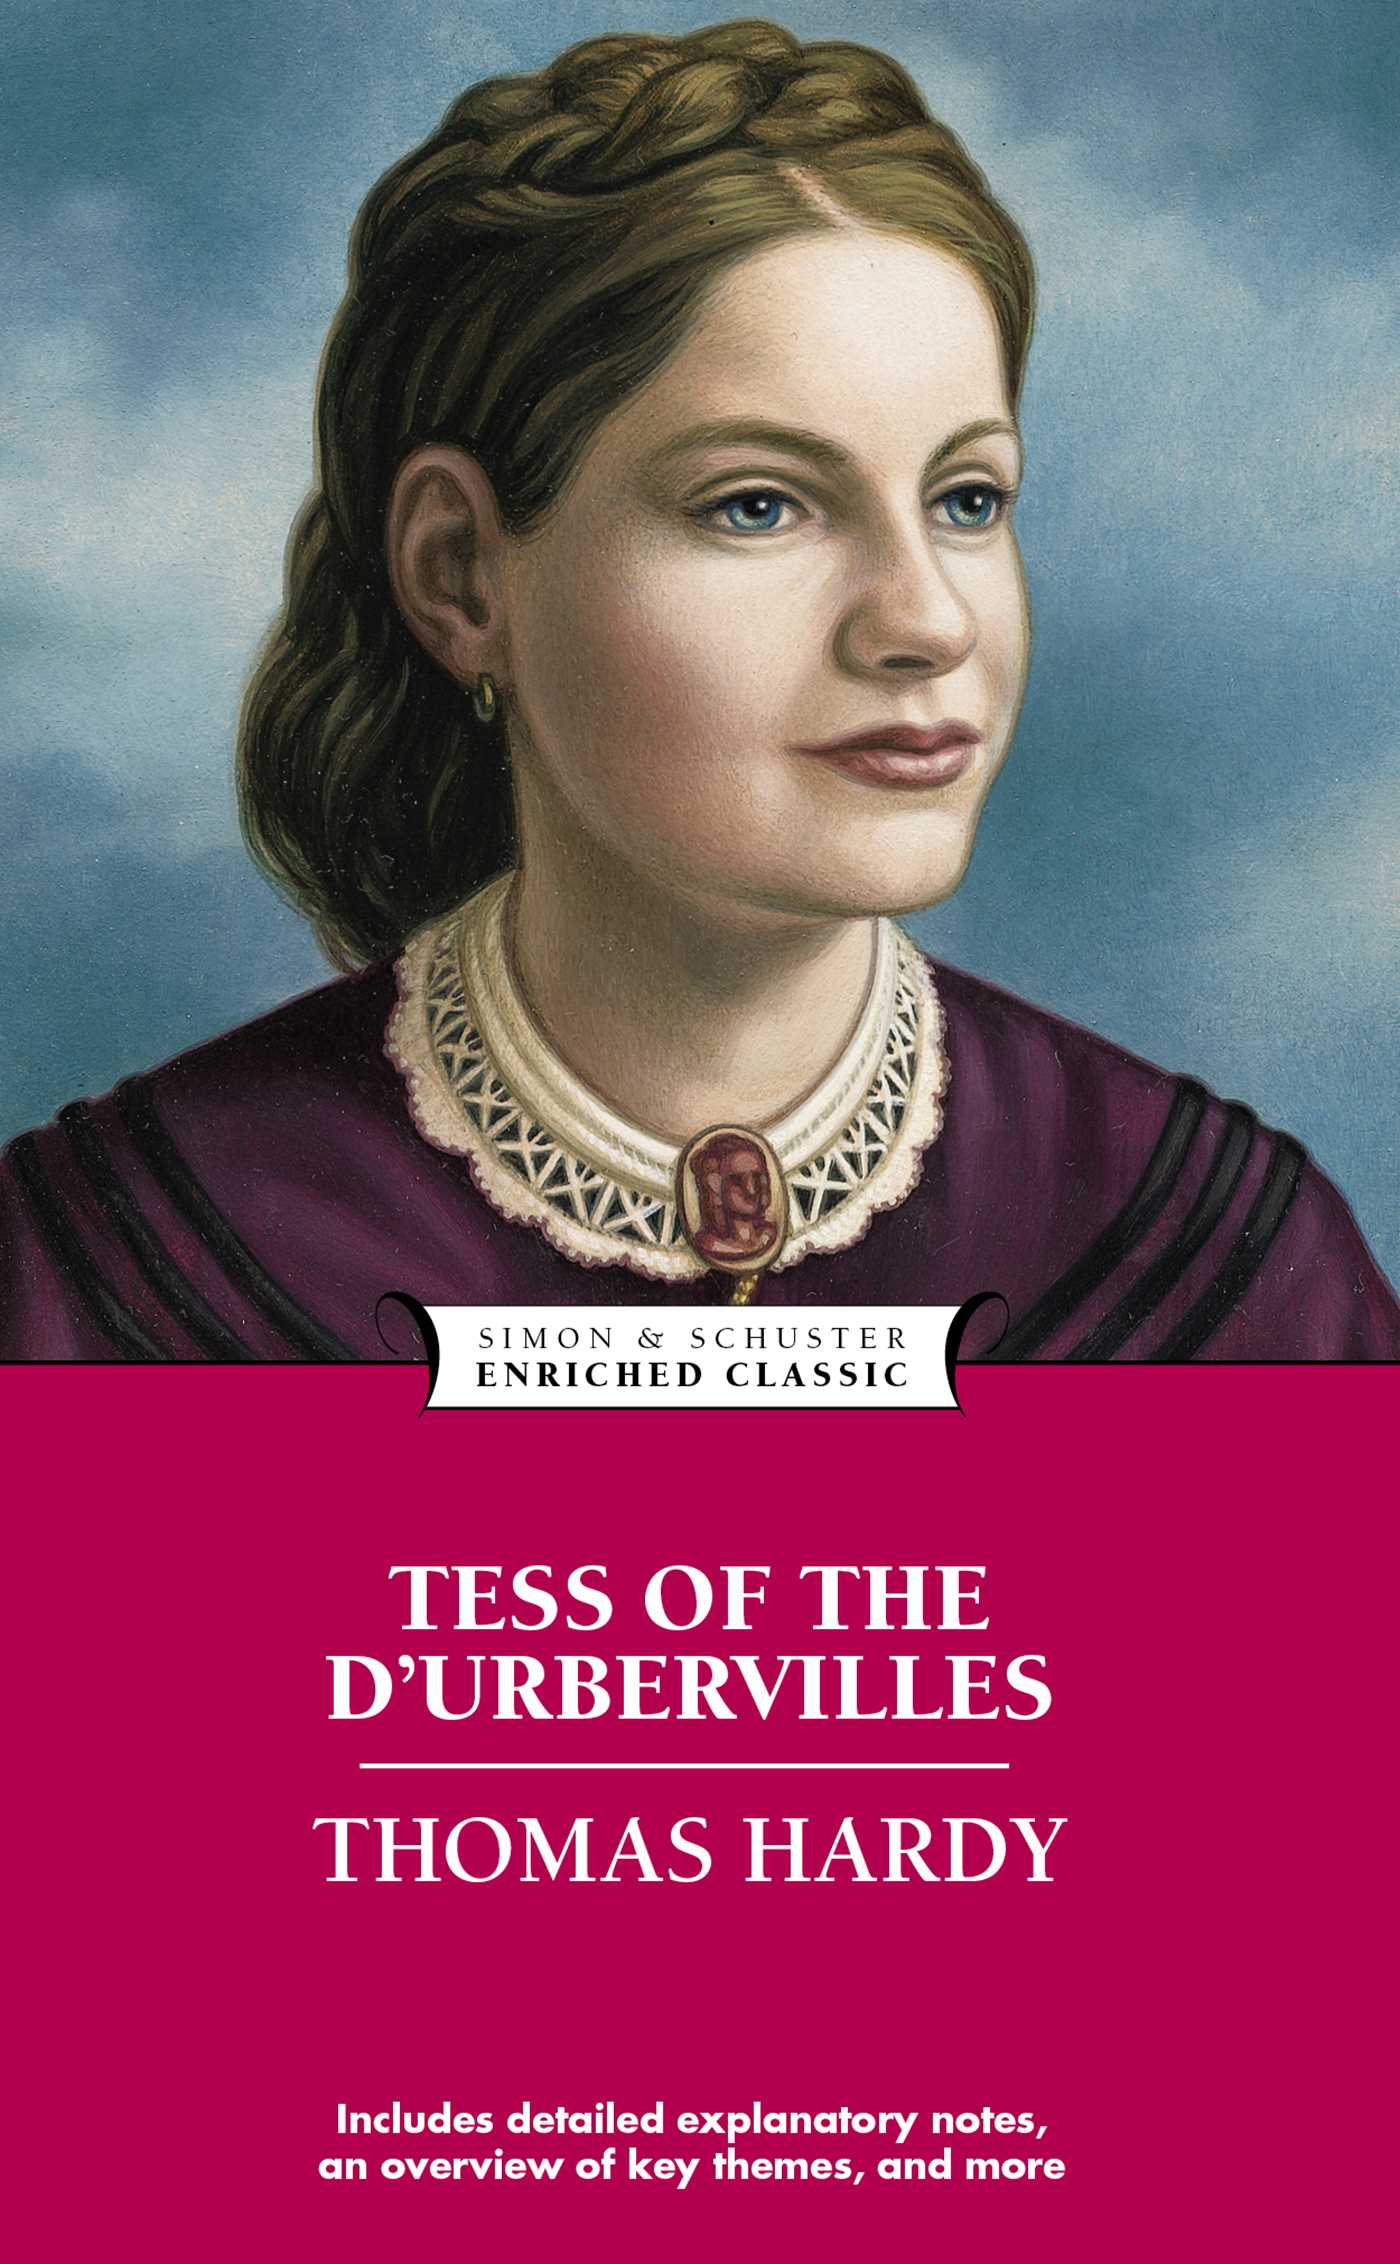 account of the life of tess in thomas hardys novel tess of the durbervilles I struggle to see how this story could not be viewed as anything other than a tragedy throughout the novel, hardy makes it clear that the life of tess, and the lives of all of us, are dictated by forces much bigger and more powerful than humans however, certainly, the life of tess is an extreme example of how humans.